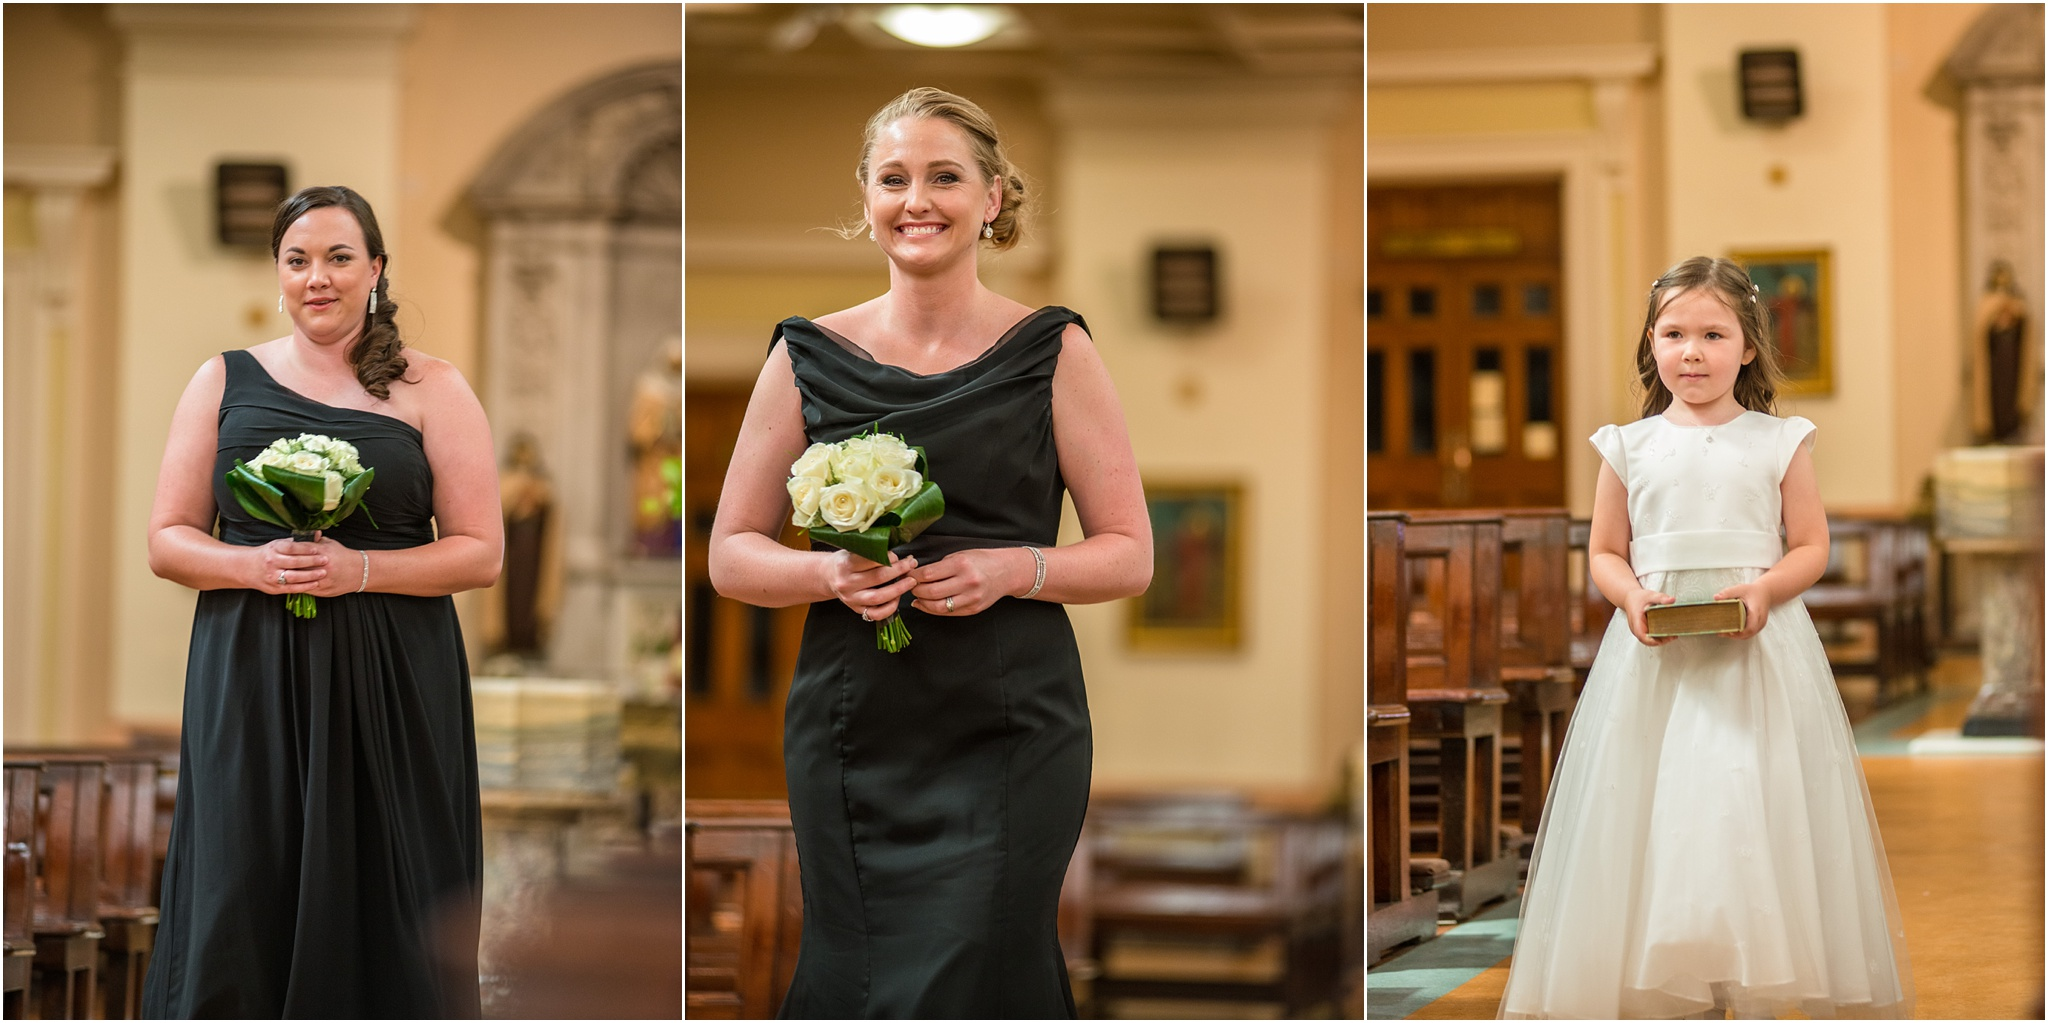 Greg Smit Photography Dublin Ireland wedding photographer Thomas Prior Hall 10